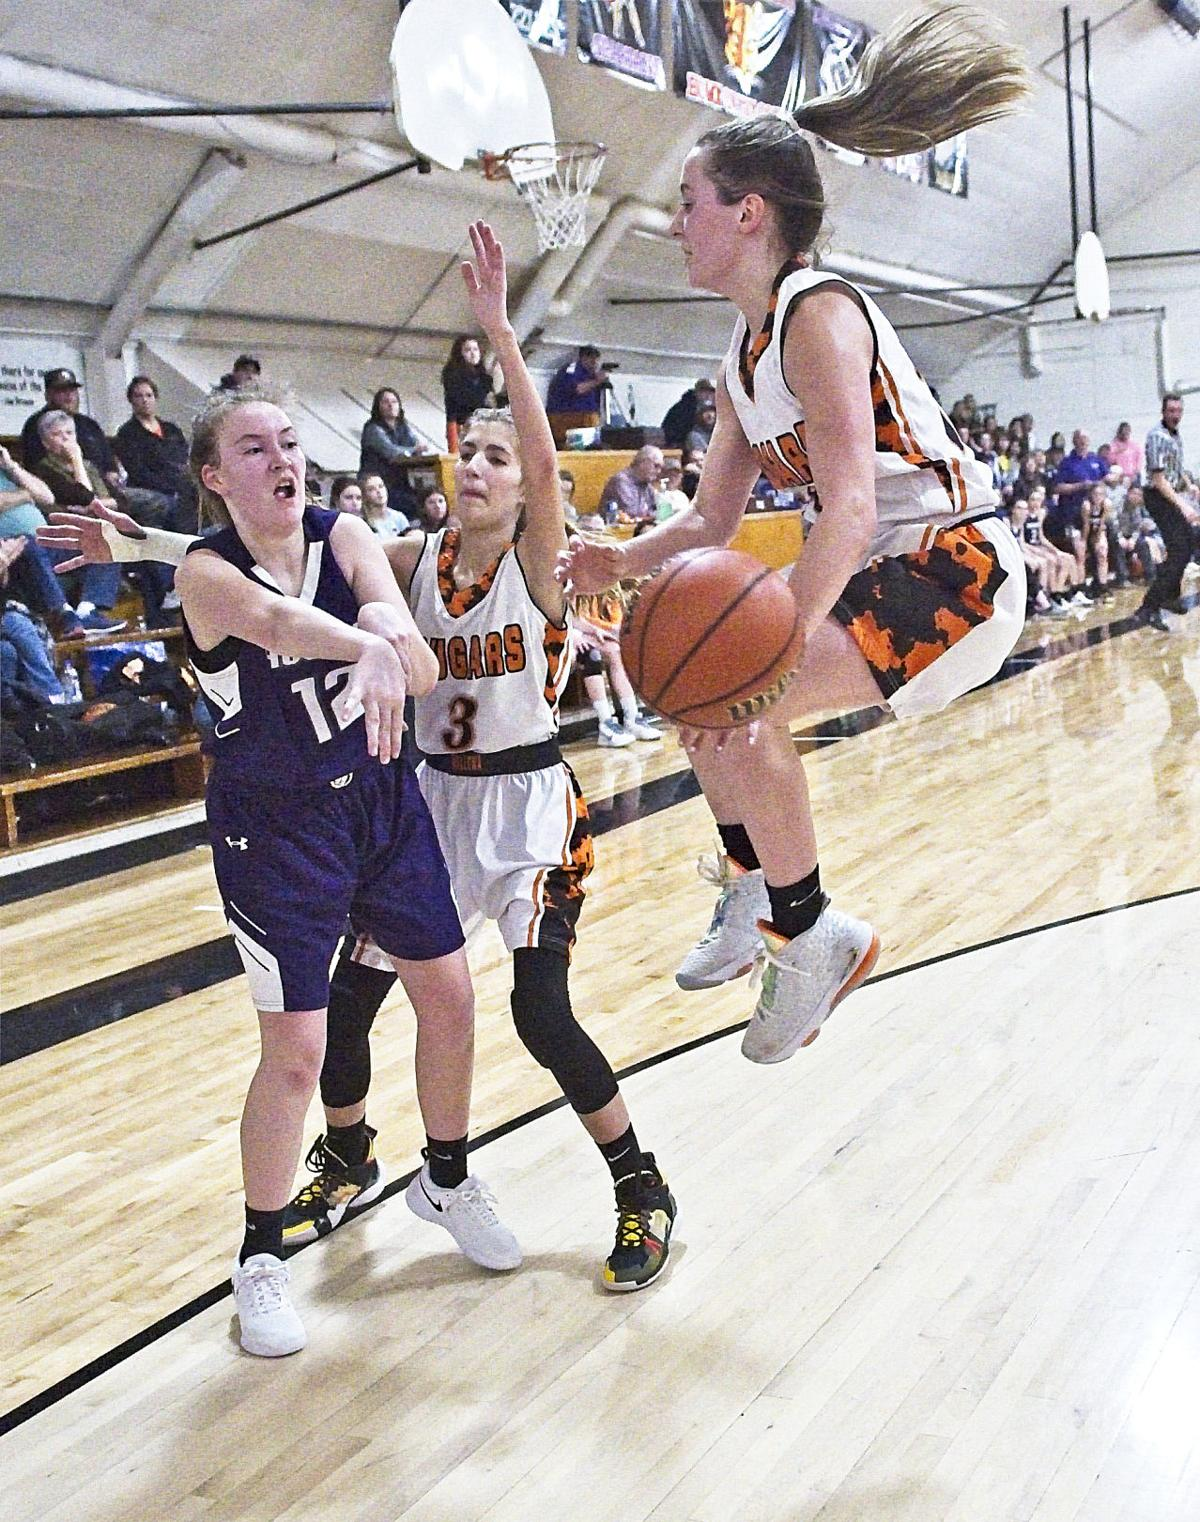 Wallowa Elgin girls 31 jan  Wallowa's Kyla Hook leaps to deflect Elgin's Mariah Wilhelm's pass whiile Bailey Hafer cuts off the escape route.jpg